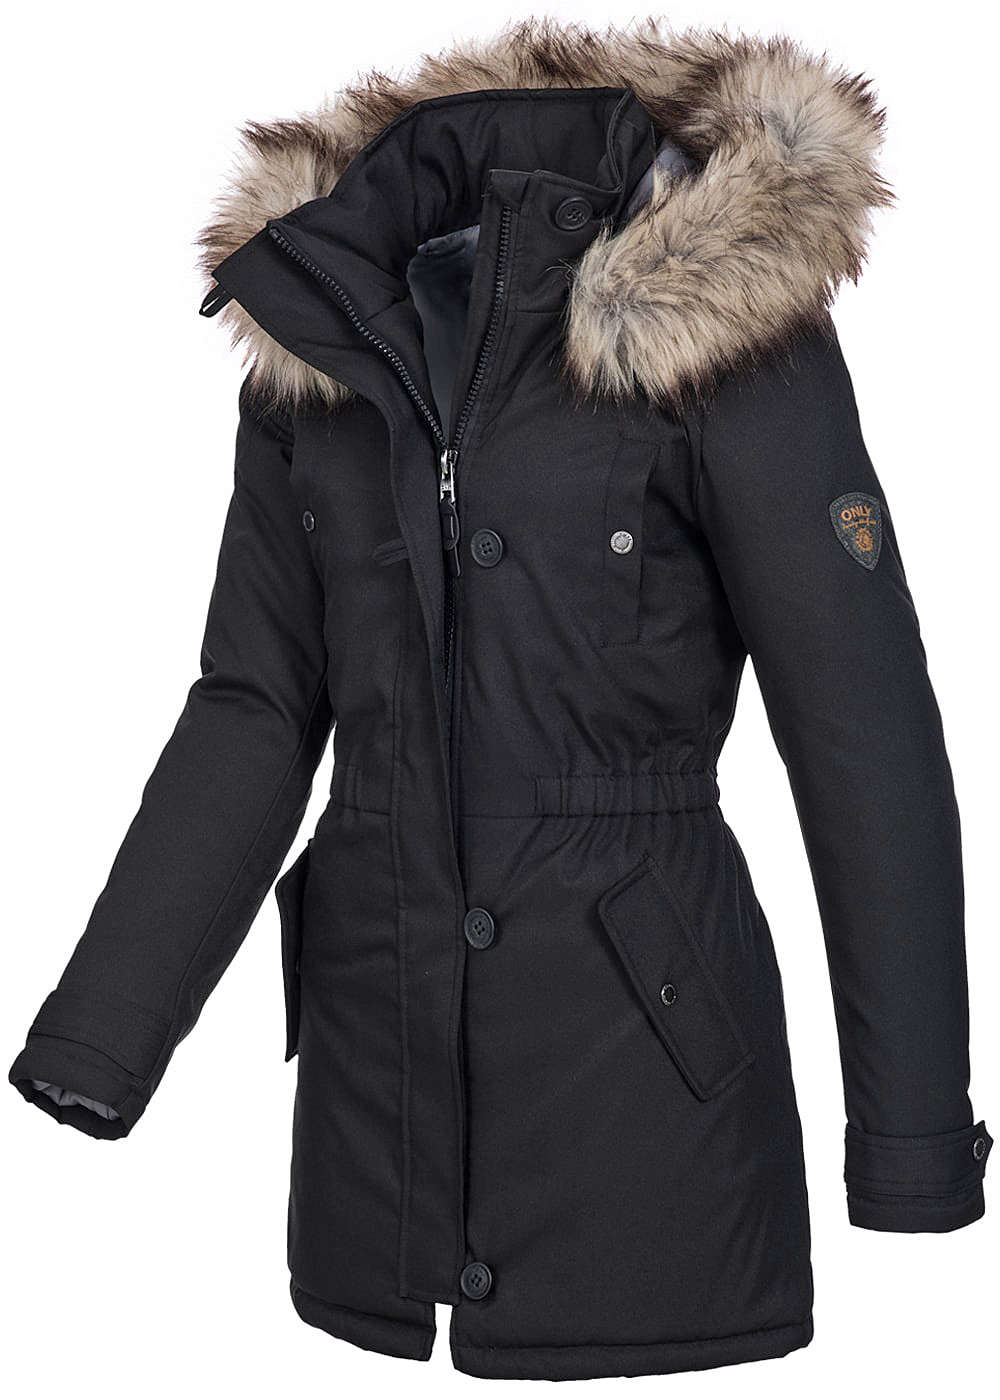 grauer parka damen navahoo la viva damen winter jacke. Black Bedroom Furniture Sets. Home Design Ideas